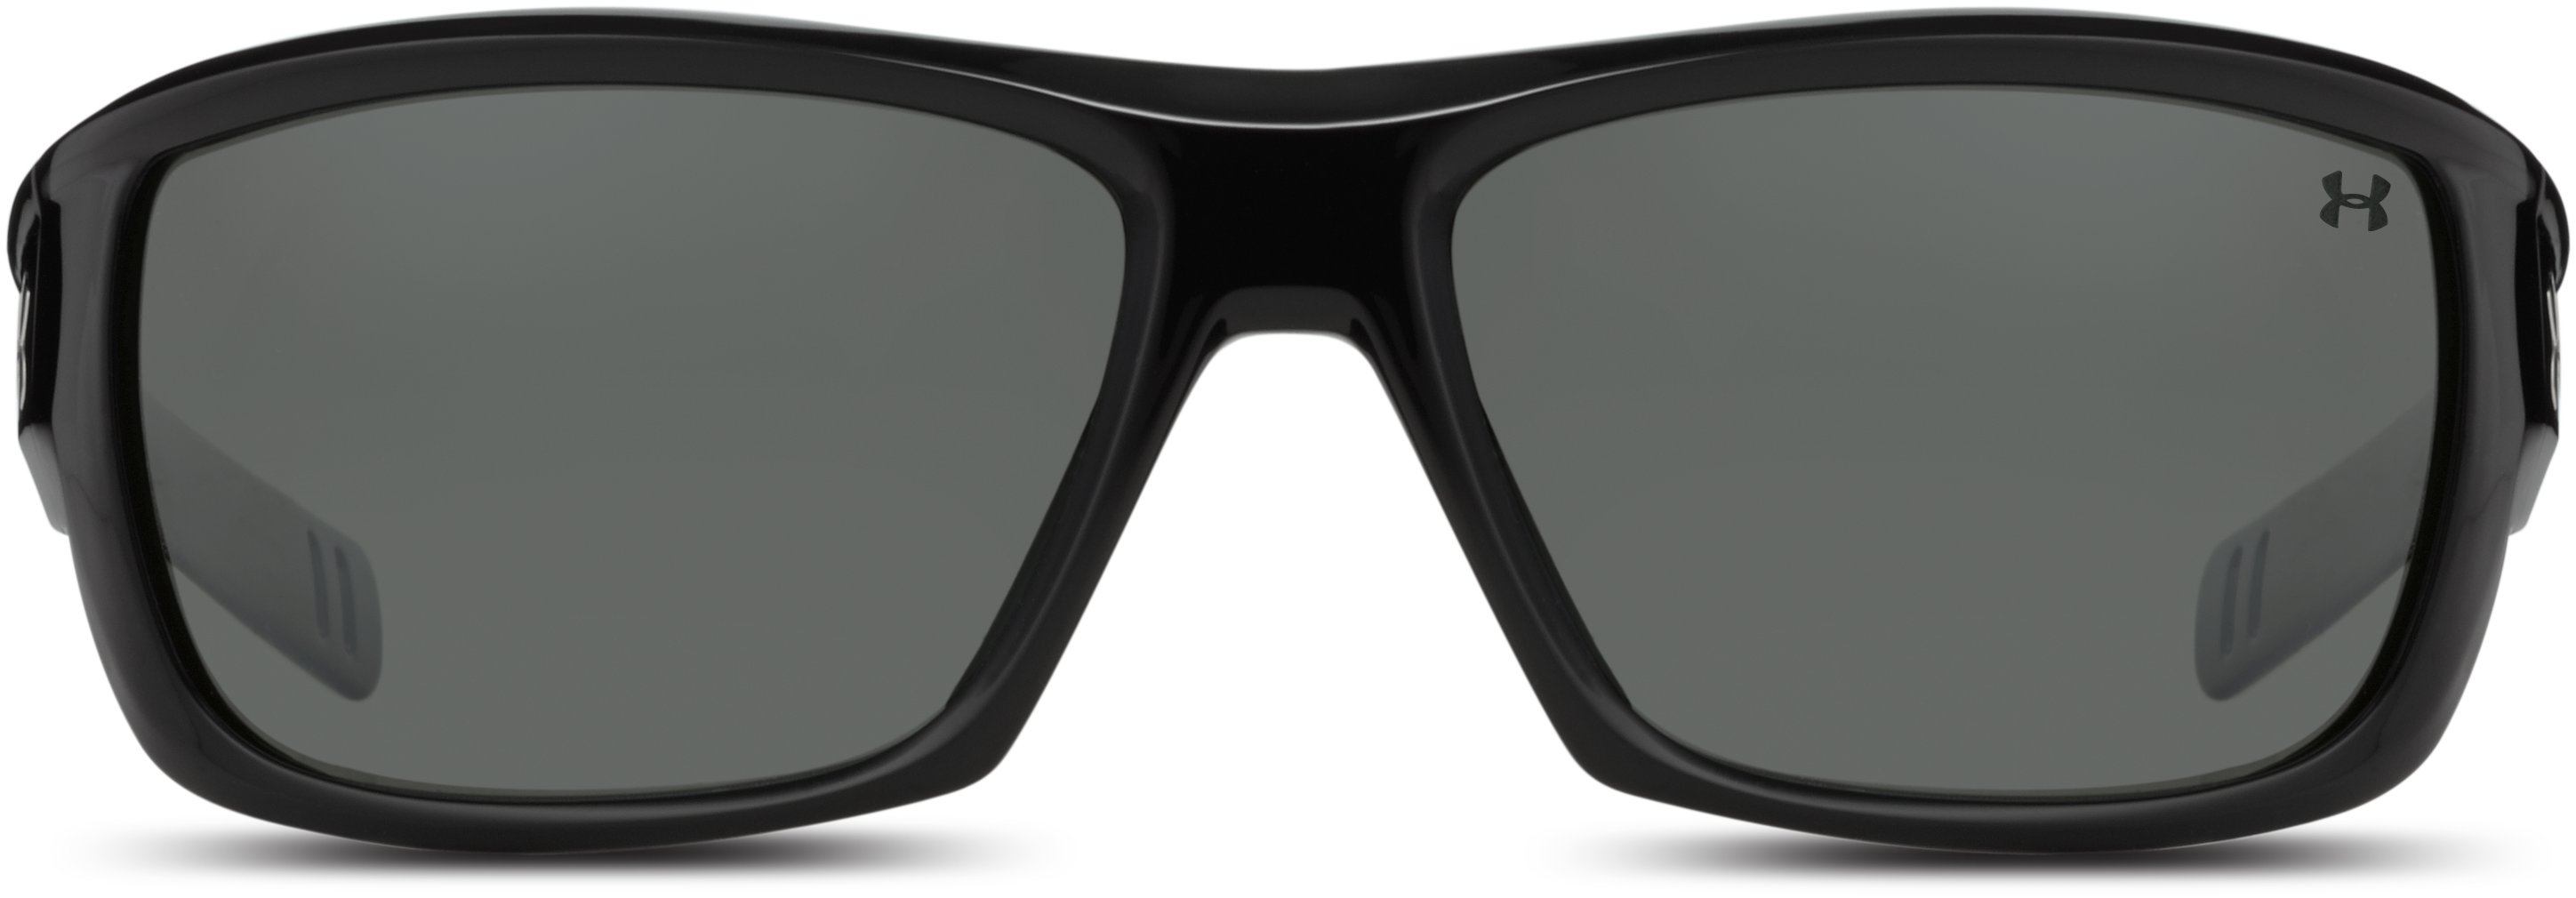 UA Rumble Polarized Sunglasses, Shiny Black,